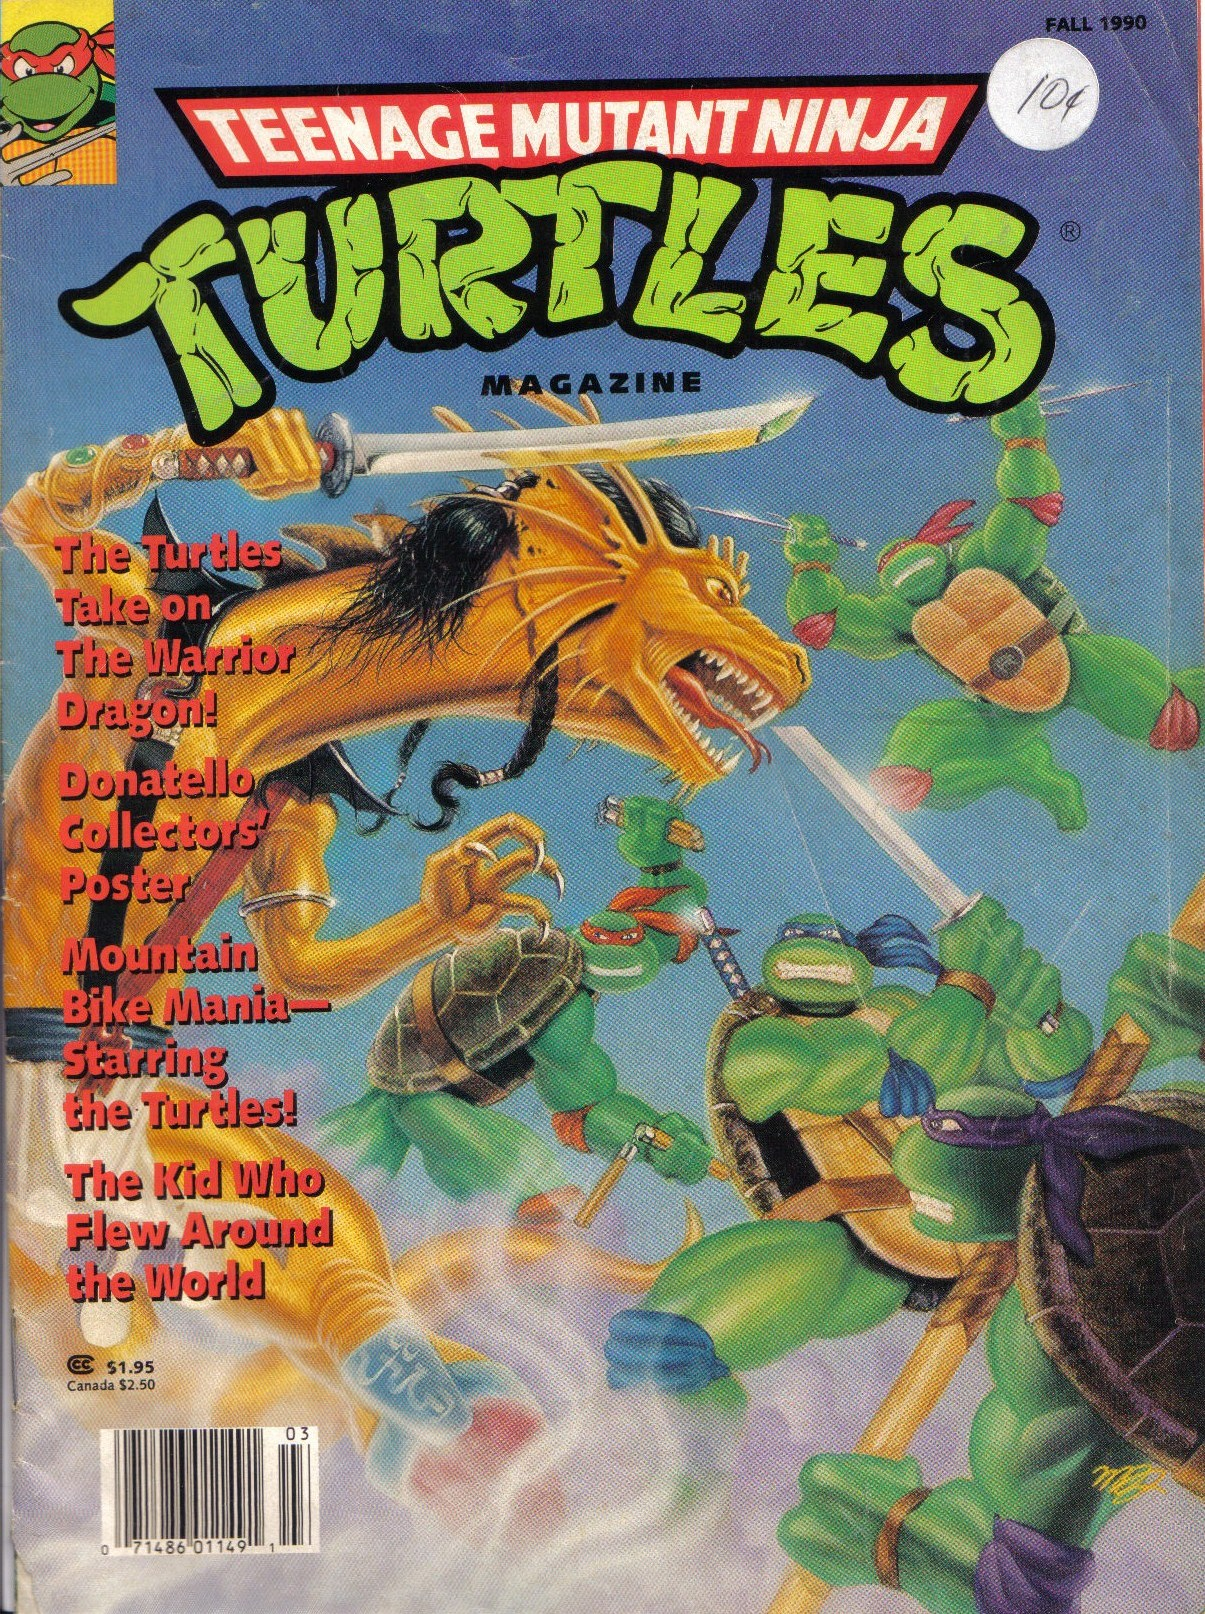 Playing In The Fall Wallpaper Tmnt Magazine Covers Tmnt Images The Technodrome